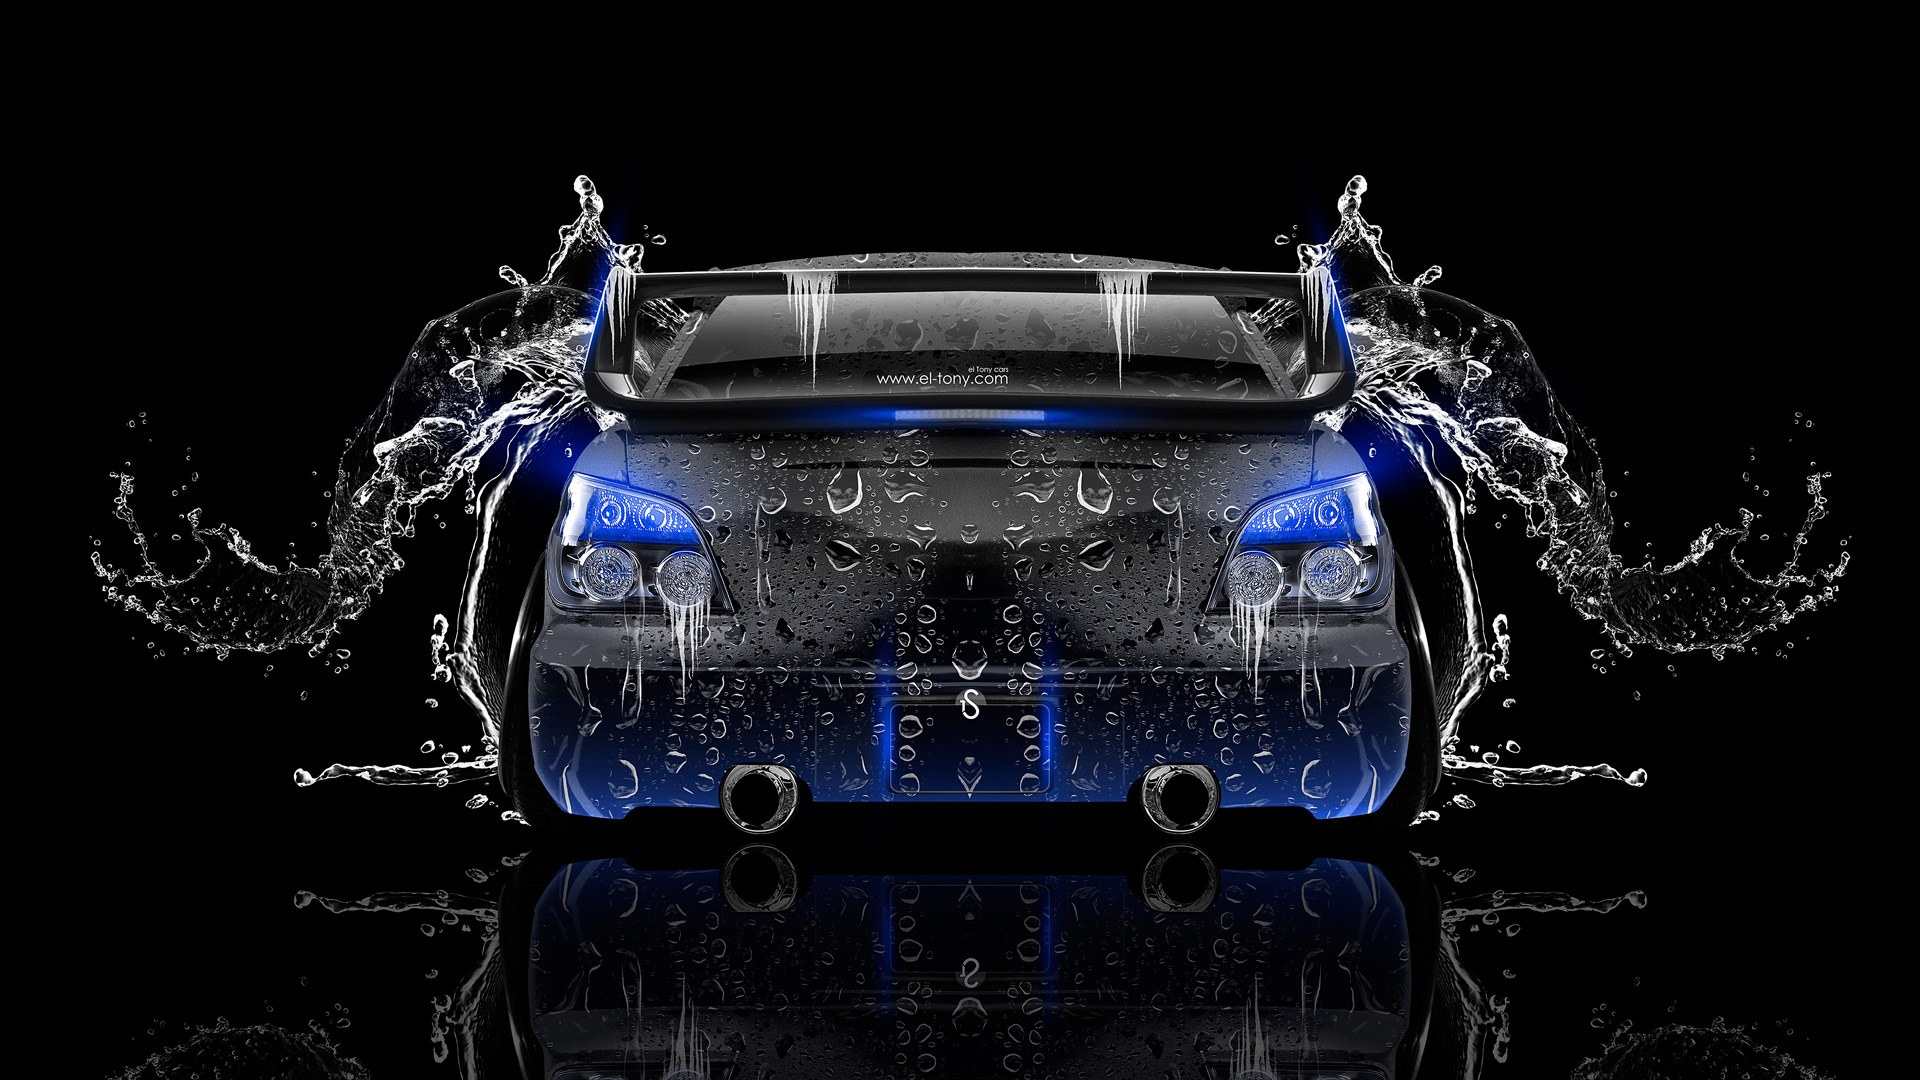 Subaru Impreza WRX STI JDM Back Water Car